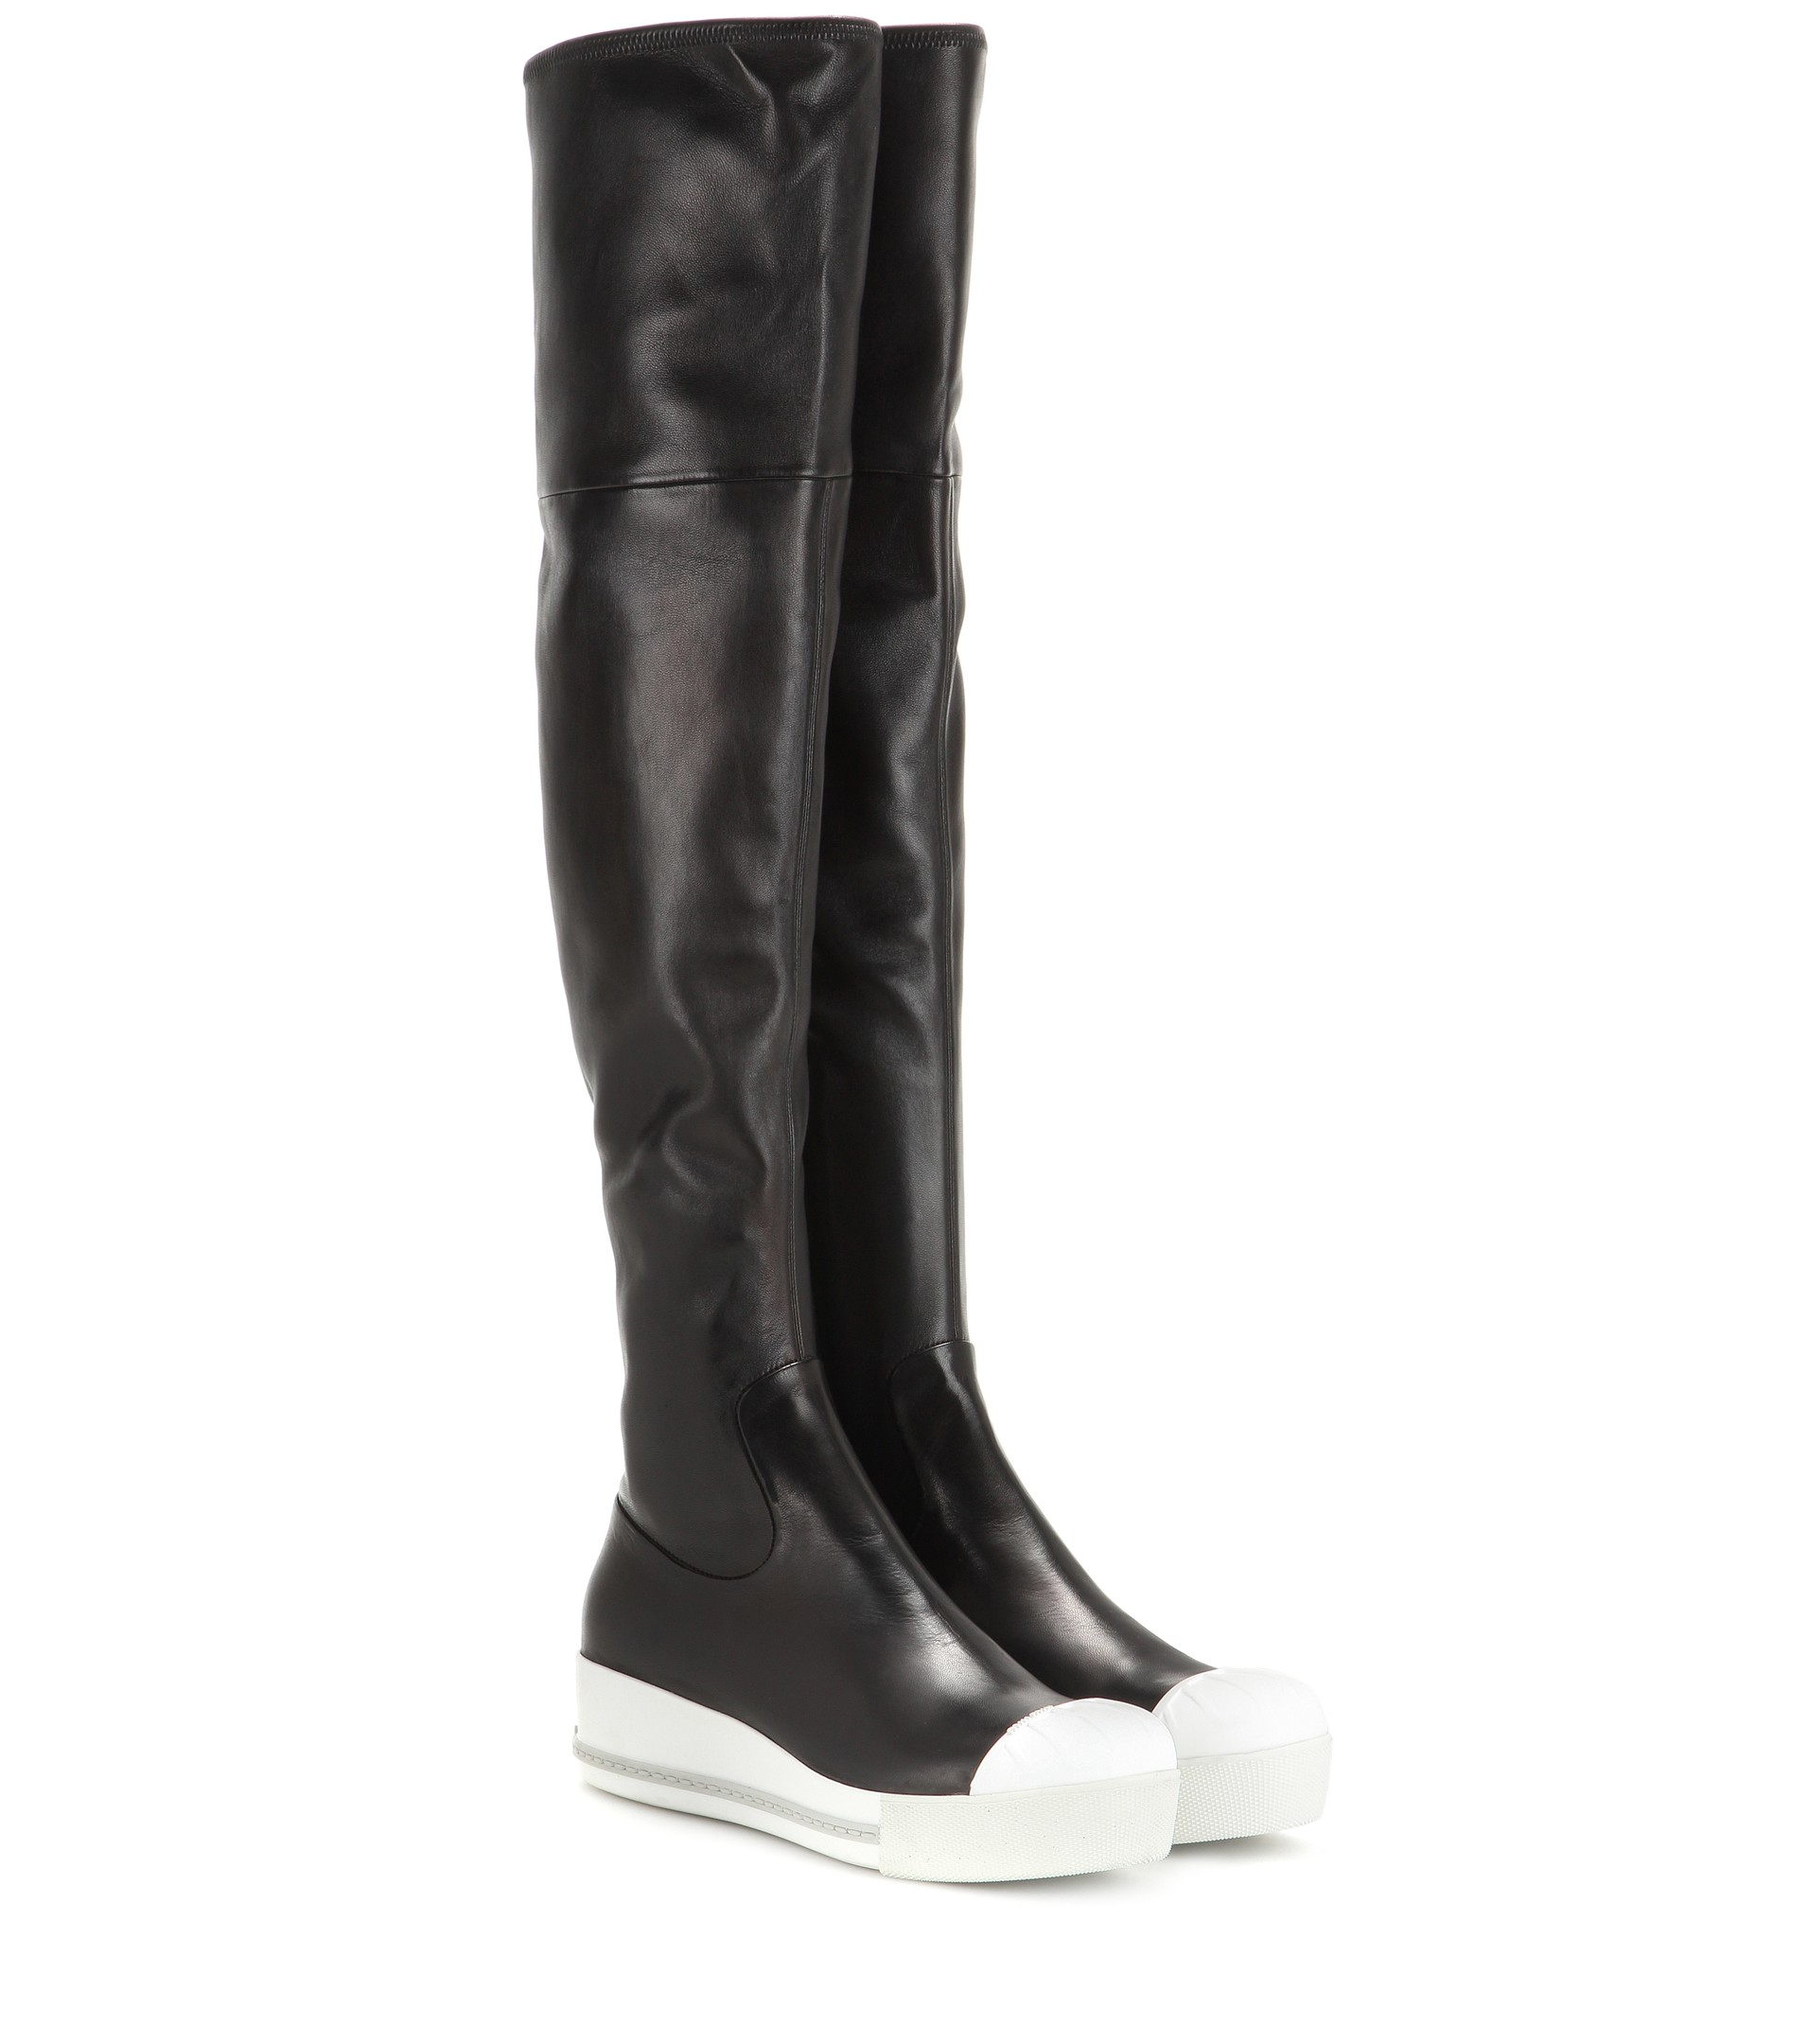 b29dc2f9fa6 Miu Miu Leather Over-The-Knee Boots in Black - Lyst